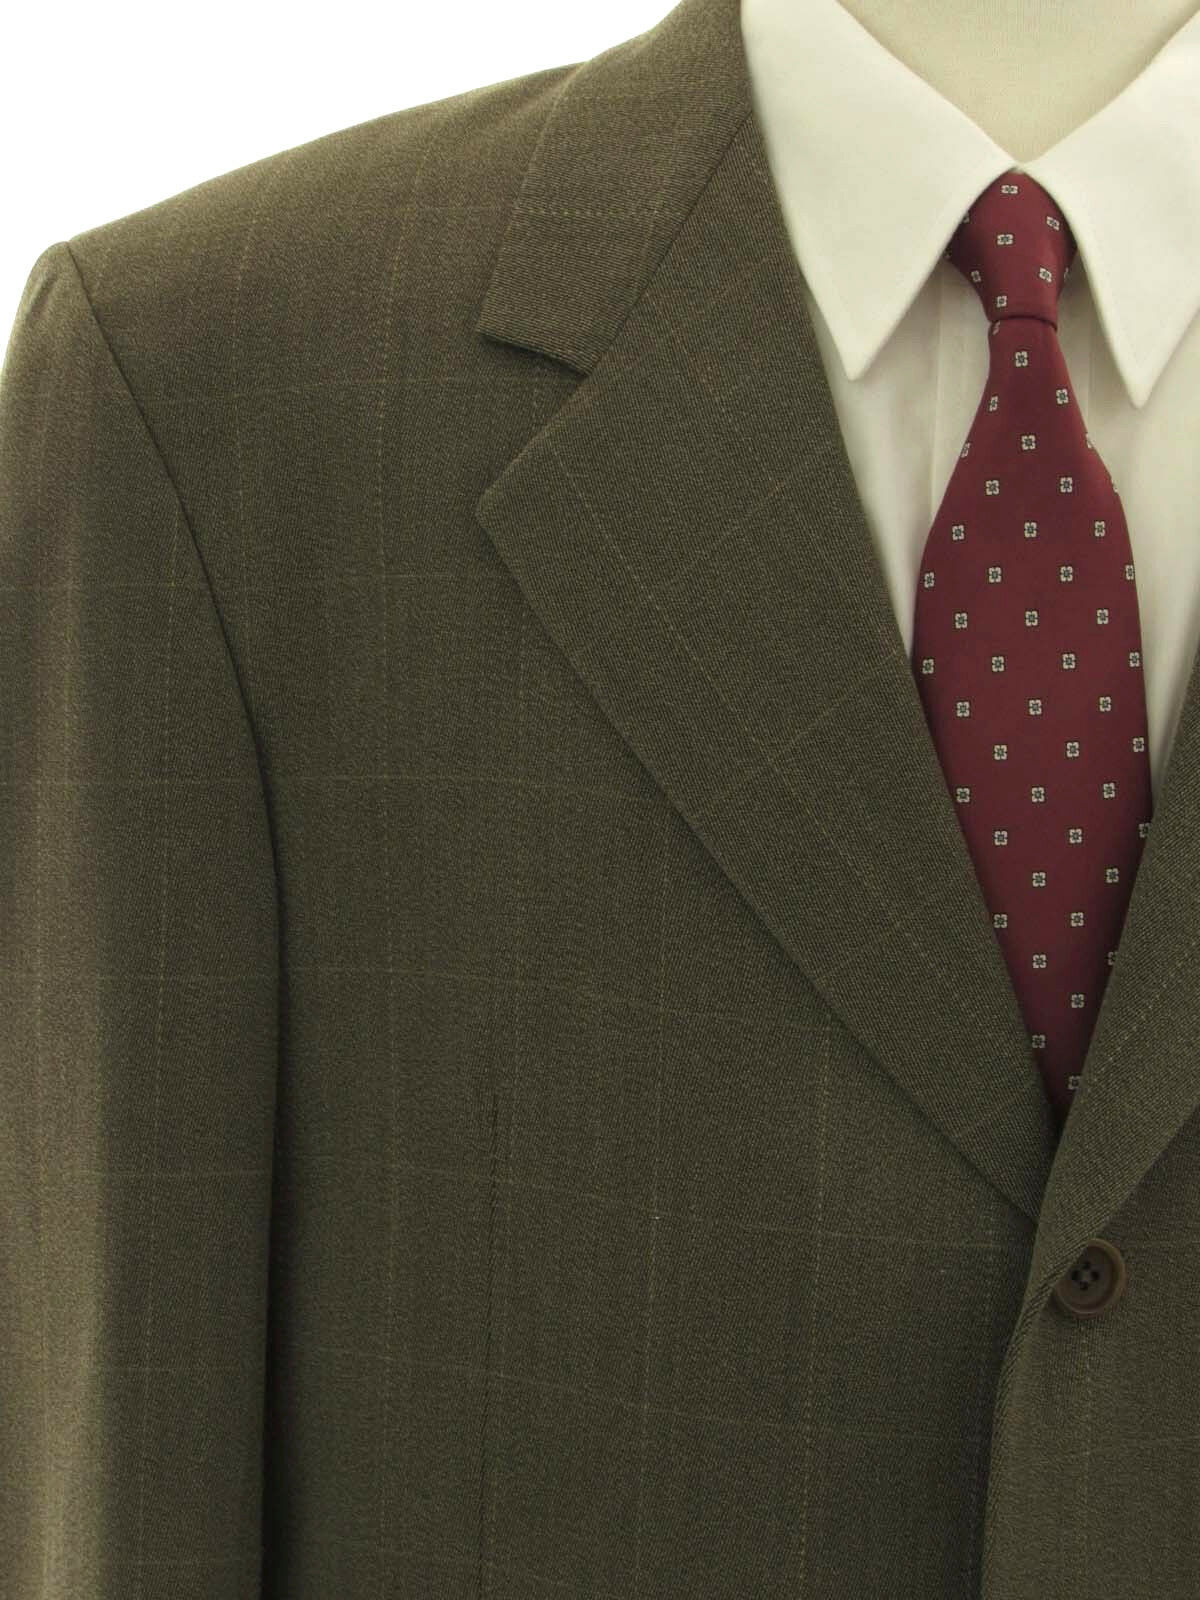 Hickey Freeman Wool Windowpane 44R Pleated Front Three Button Suit W34 L29.5